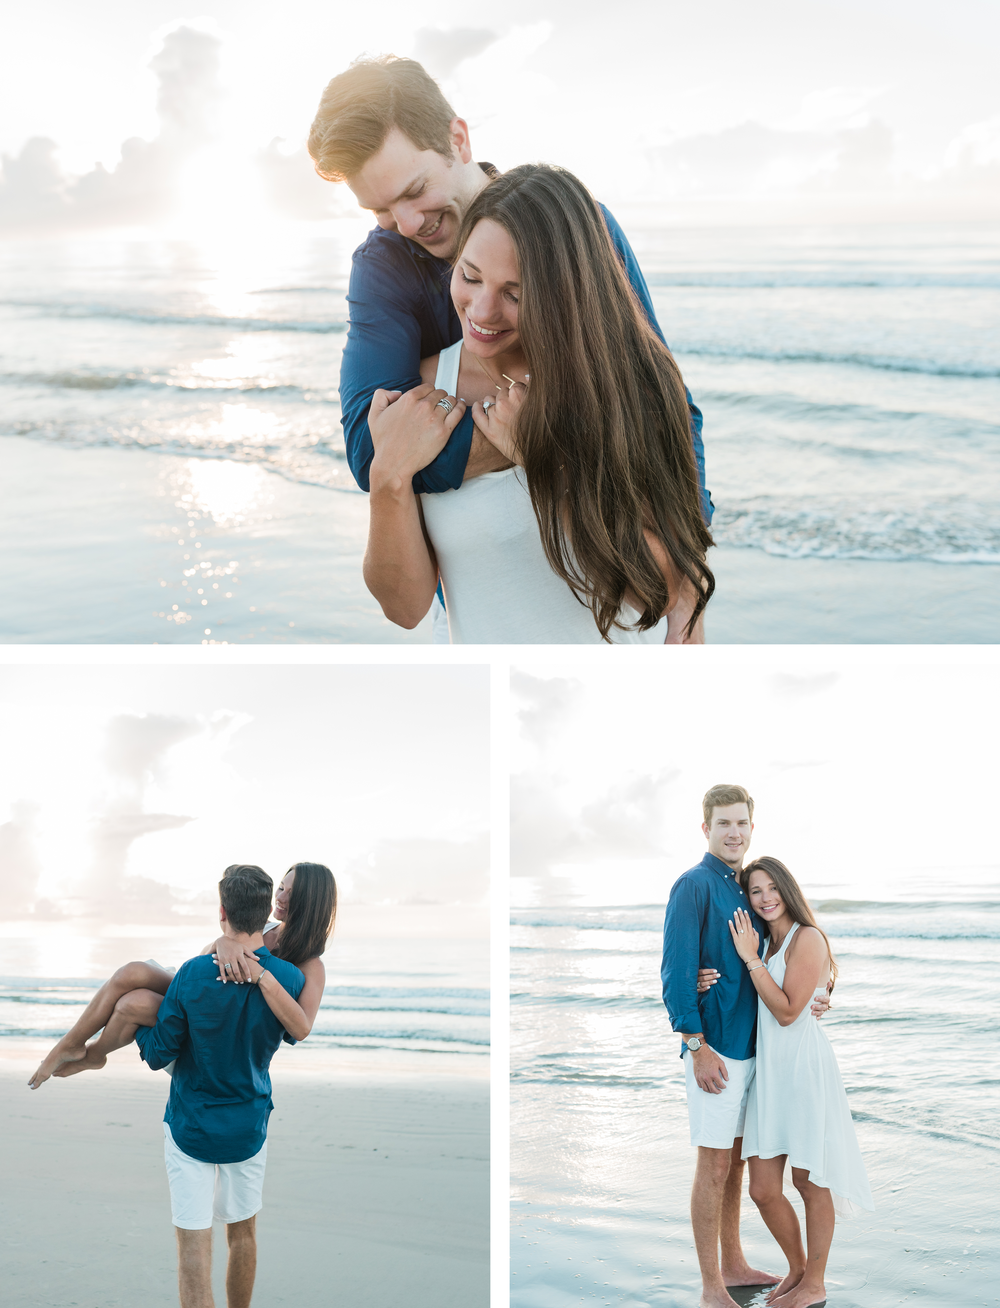 Evan Haley Engagement_Pawleys Island SC_Kristen Paige Photography_Gallery 13.png